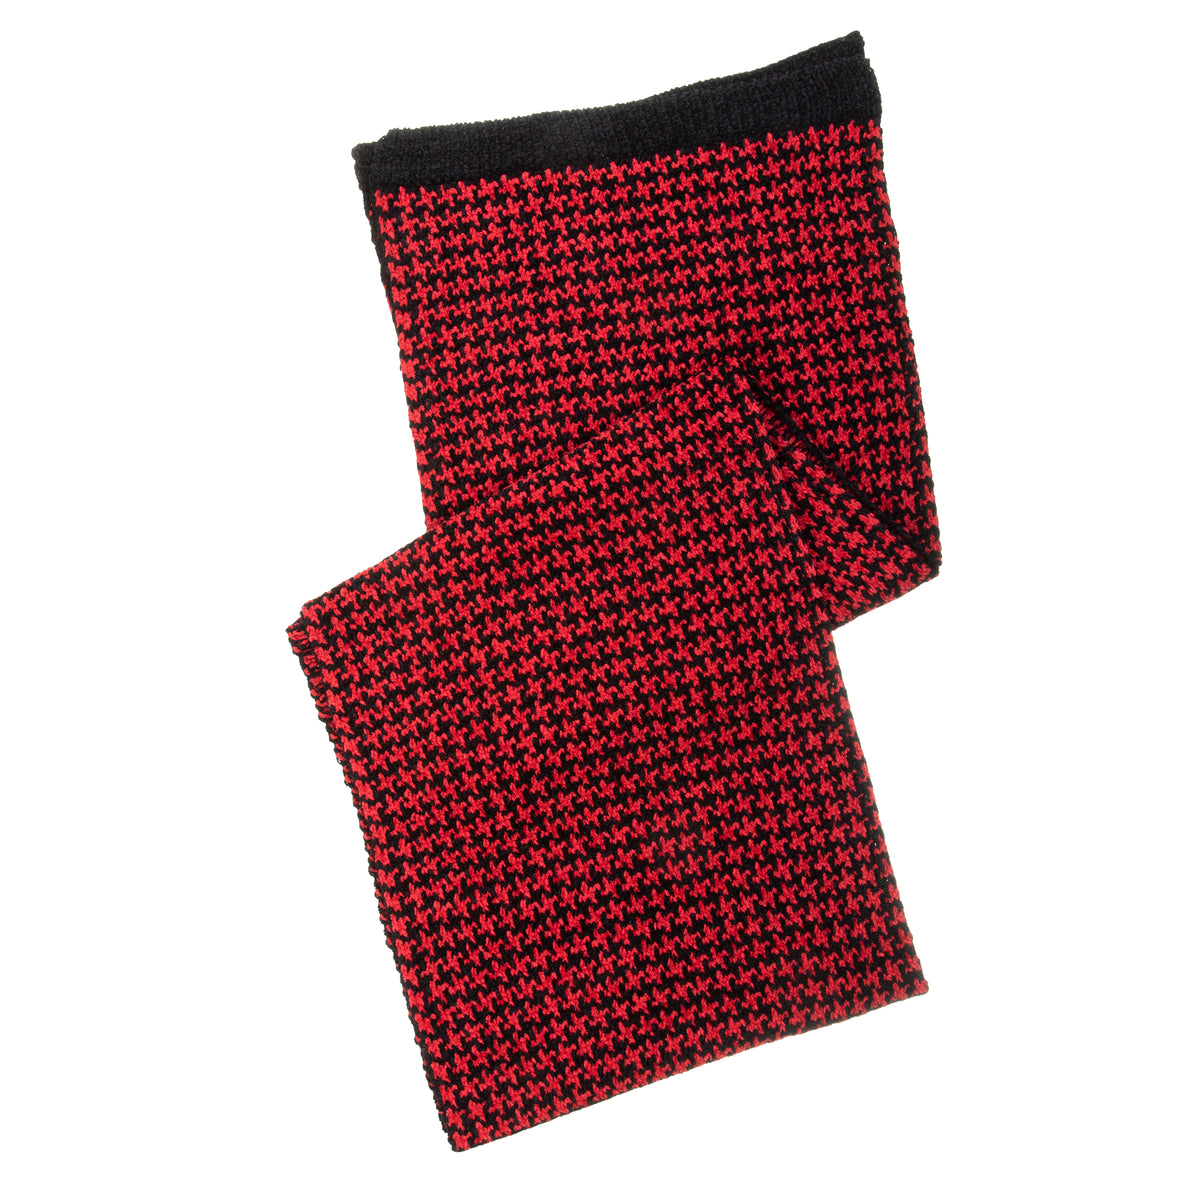 Women's Houndstooth Chenille Scarf in Black and Red